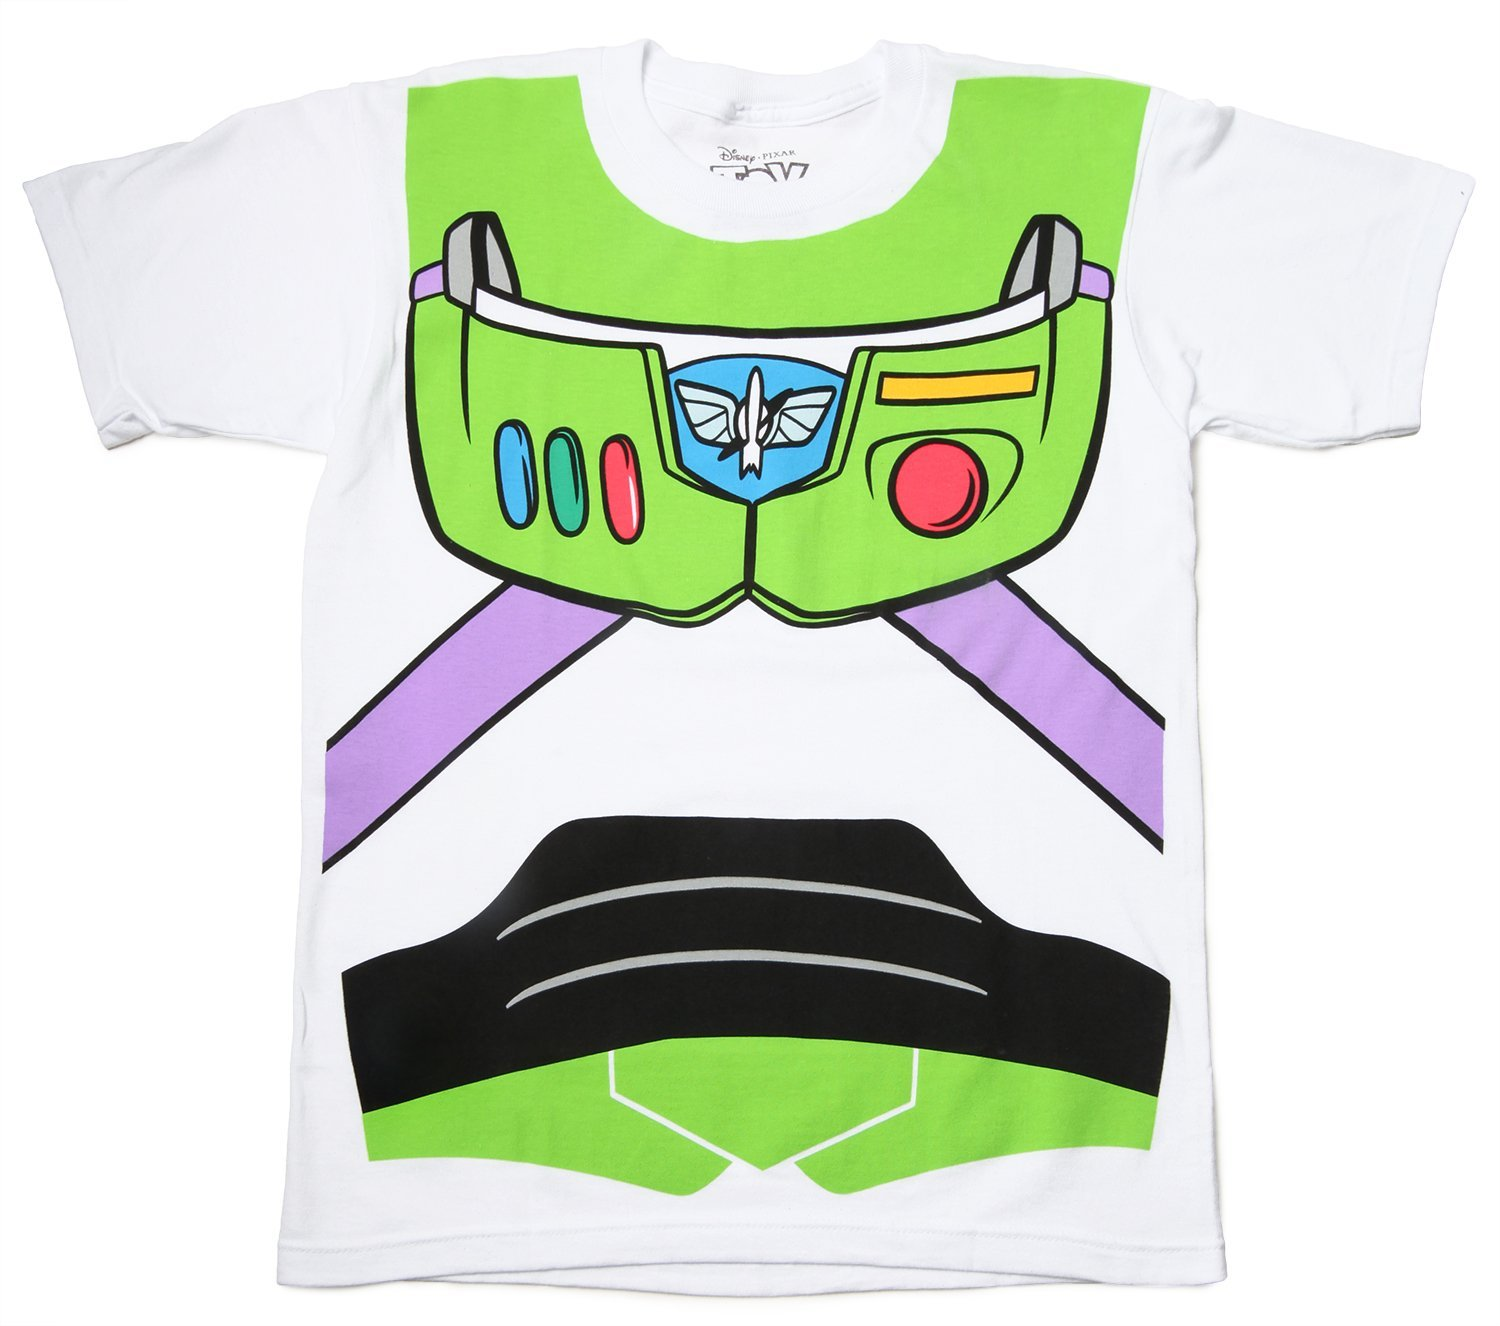 Amazon.com: toy story buzz lightyear astronaut costume white t